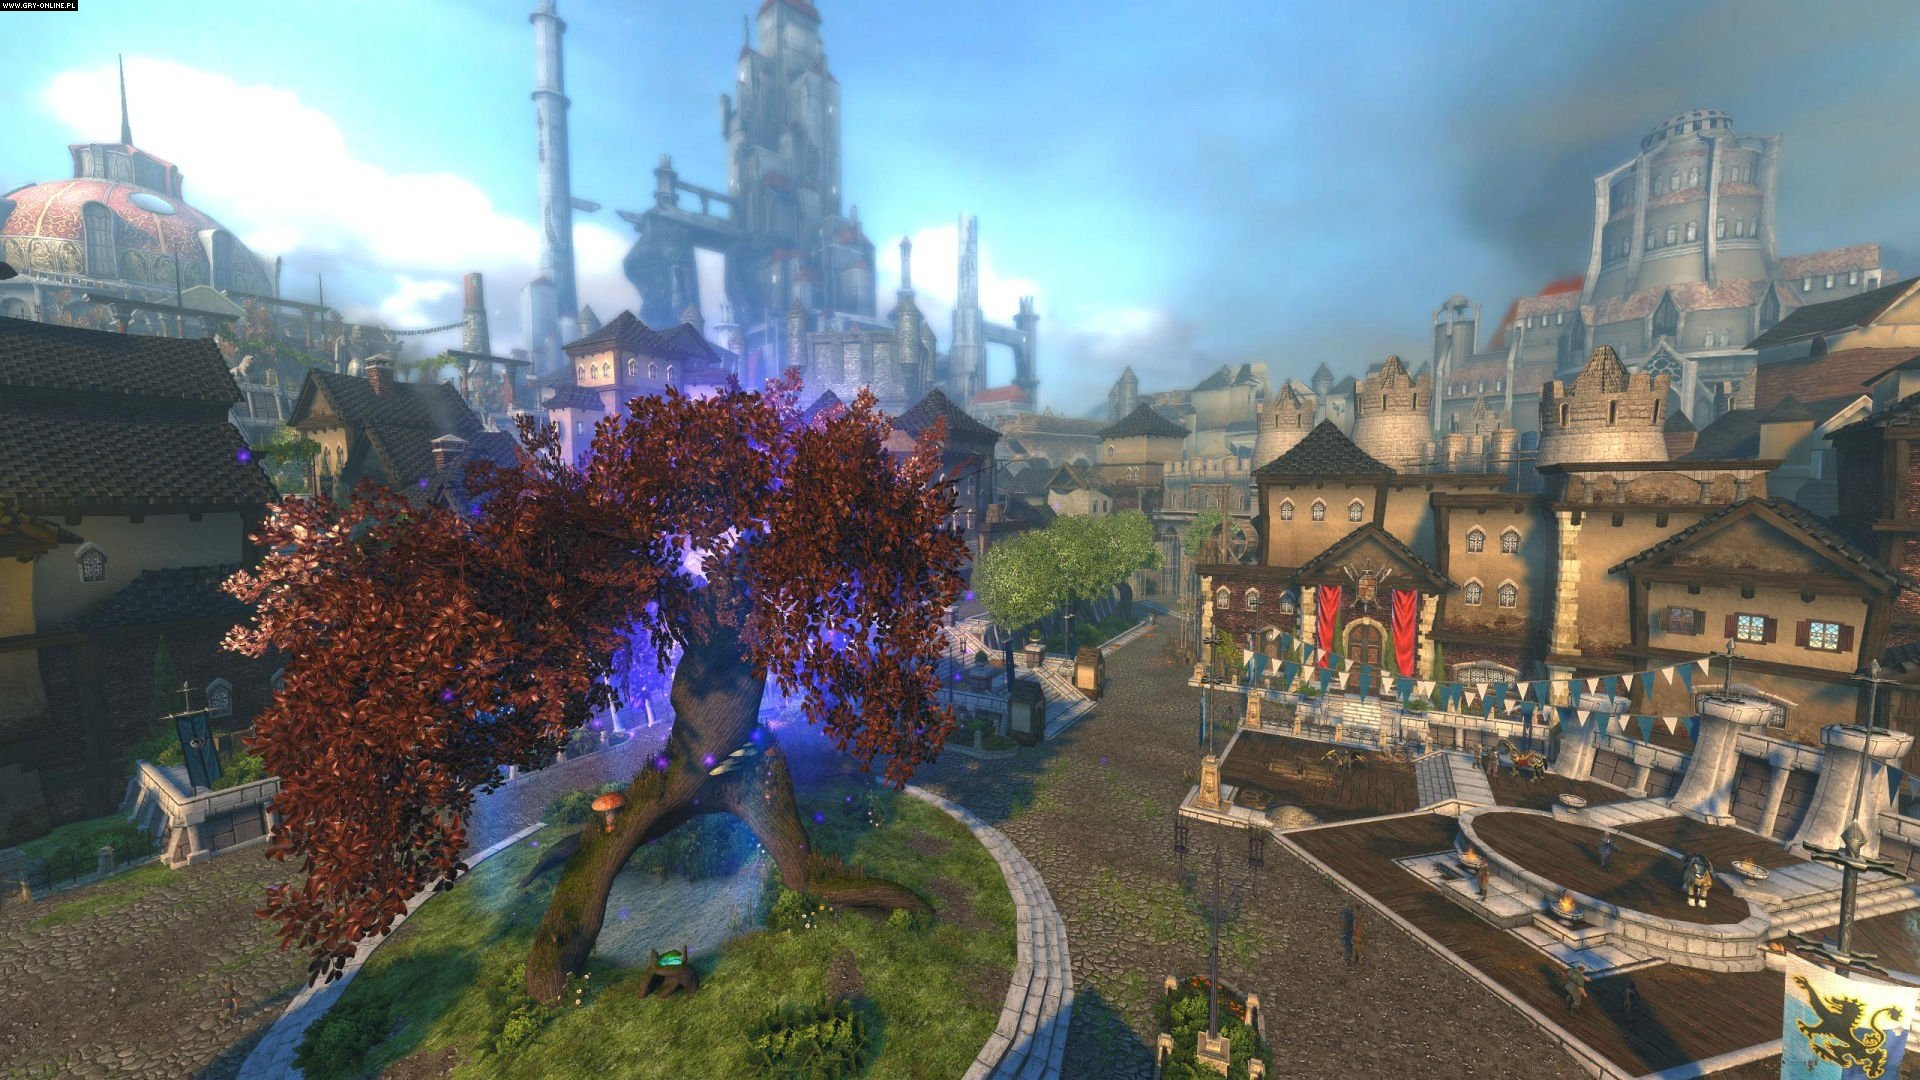 Neverwinter PC Games Image 19/327, Cryptic Studios, Perfect World Entertainment